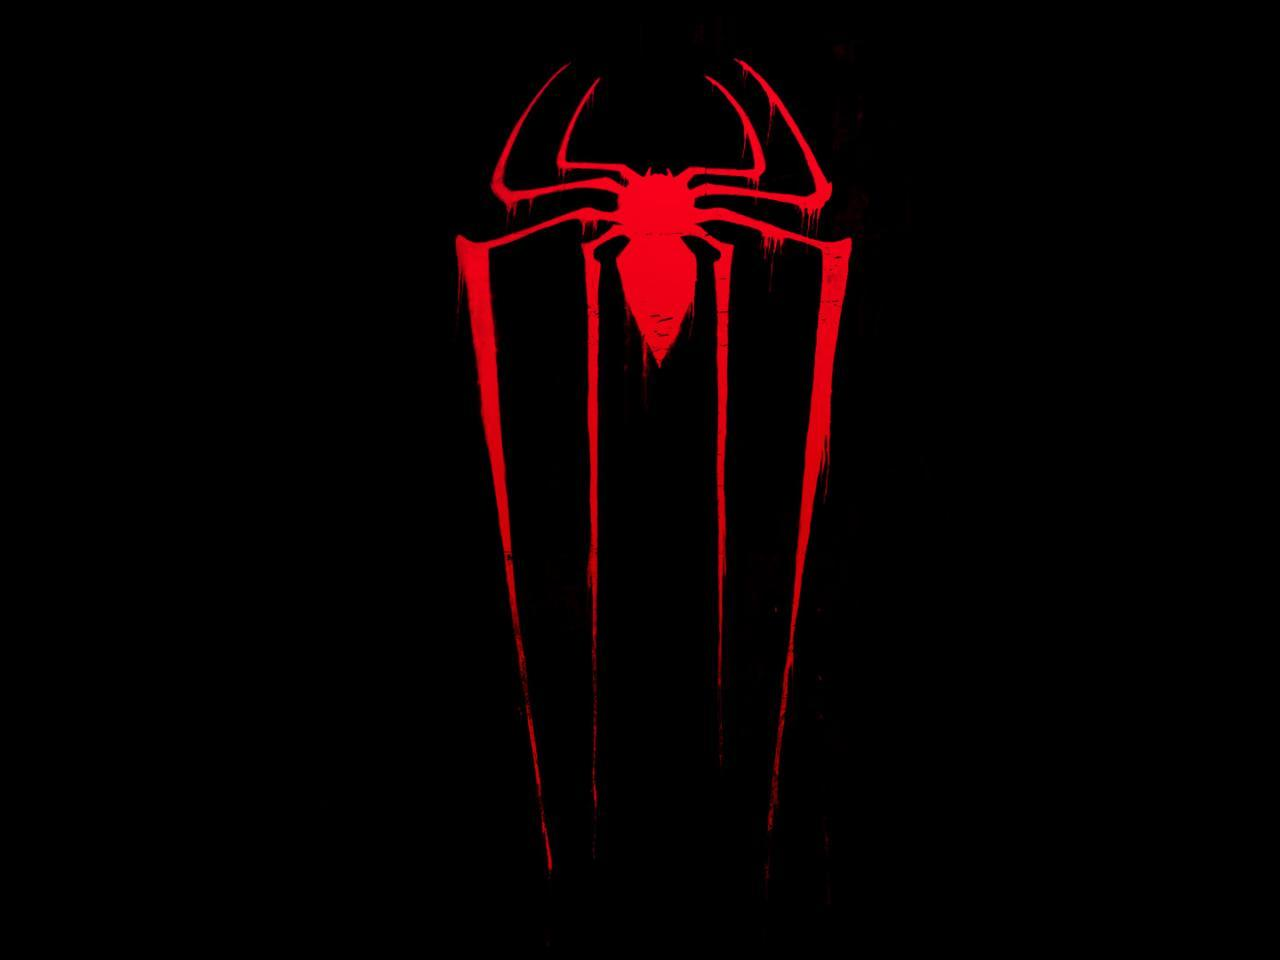 Spider Man 2099 Wallpaper 1080p: Spiderman Logo Wallpapers